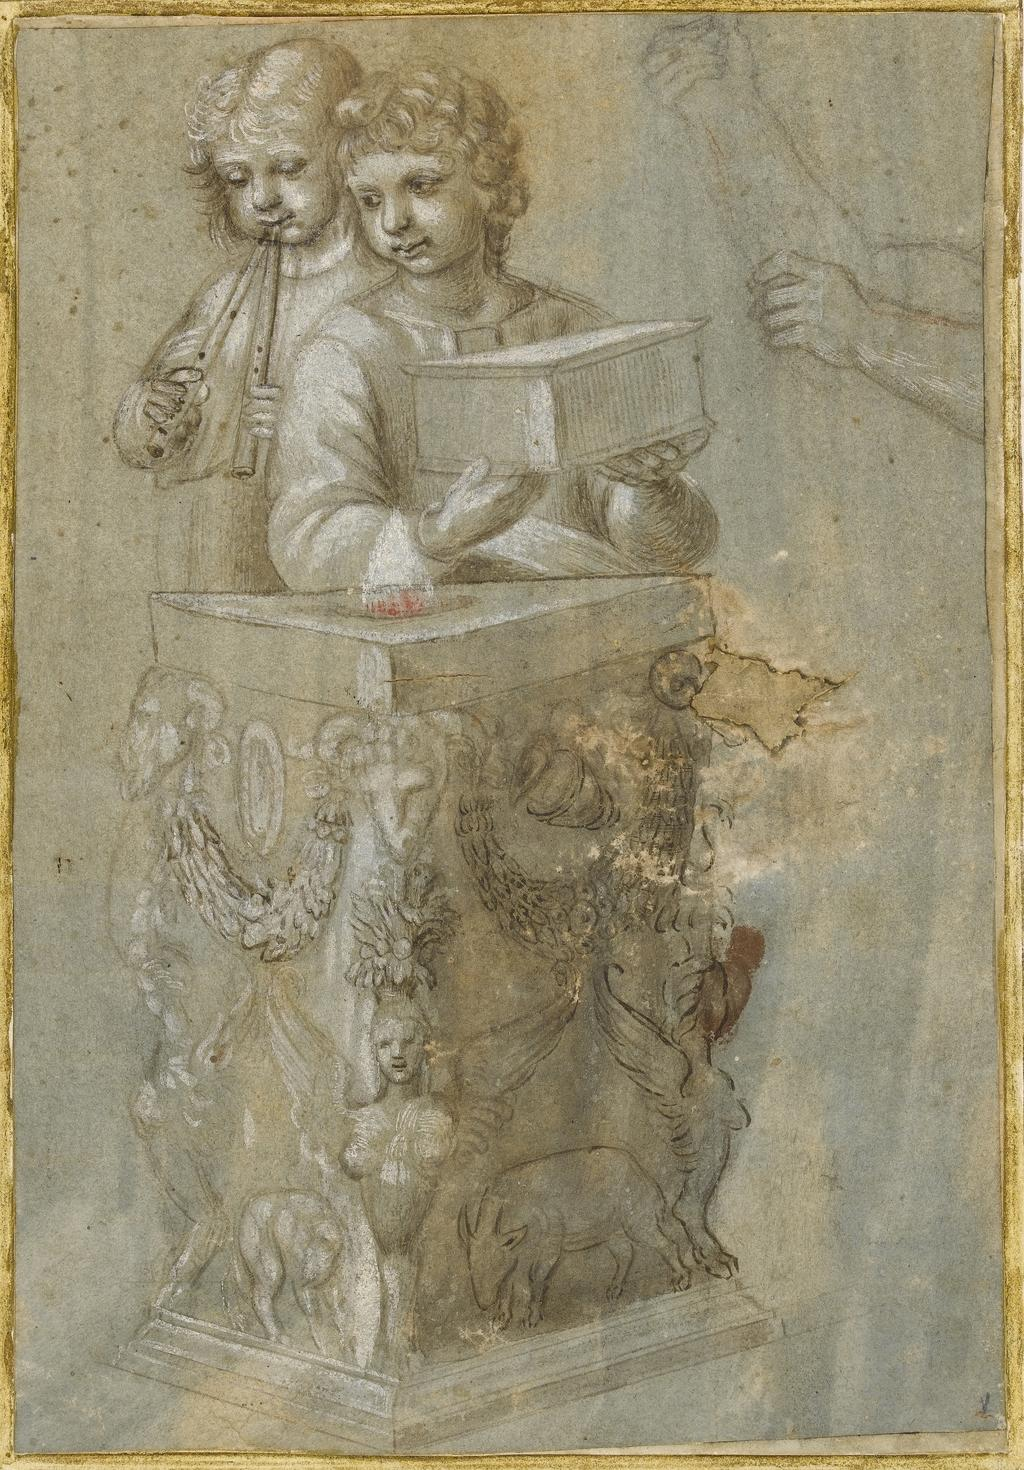 An image of Title/s: Copy after the cartoon of St Paul and St Barnabus at Lystra Maker/s: Raffaello Sanzio after (draughtsman) [ULAN info: 1483-1520]Technique Description: pen and brown ink over metal point, heightened with white on paper washed grey-blue Dimensions: height: 235 mm, width: 160 mm